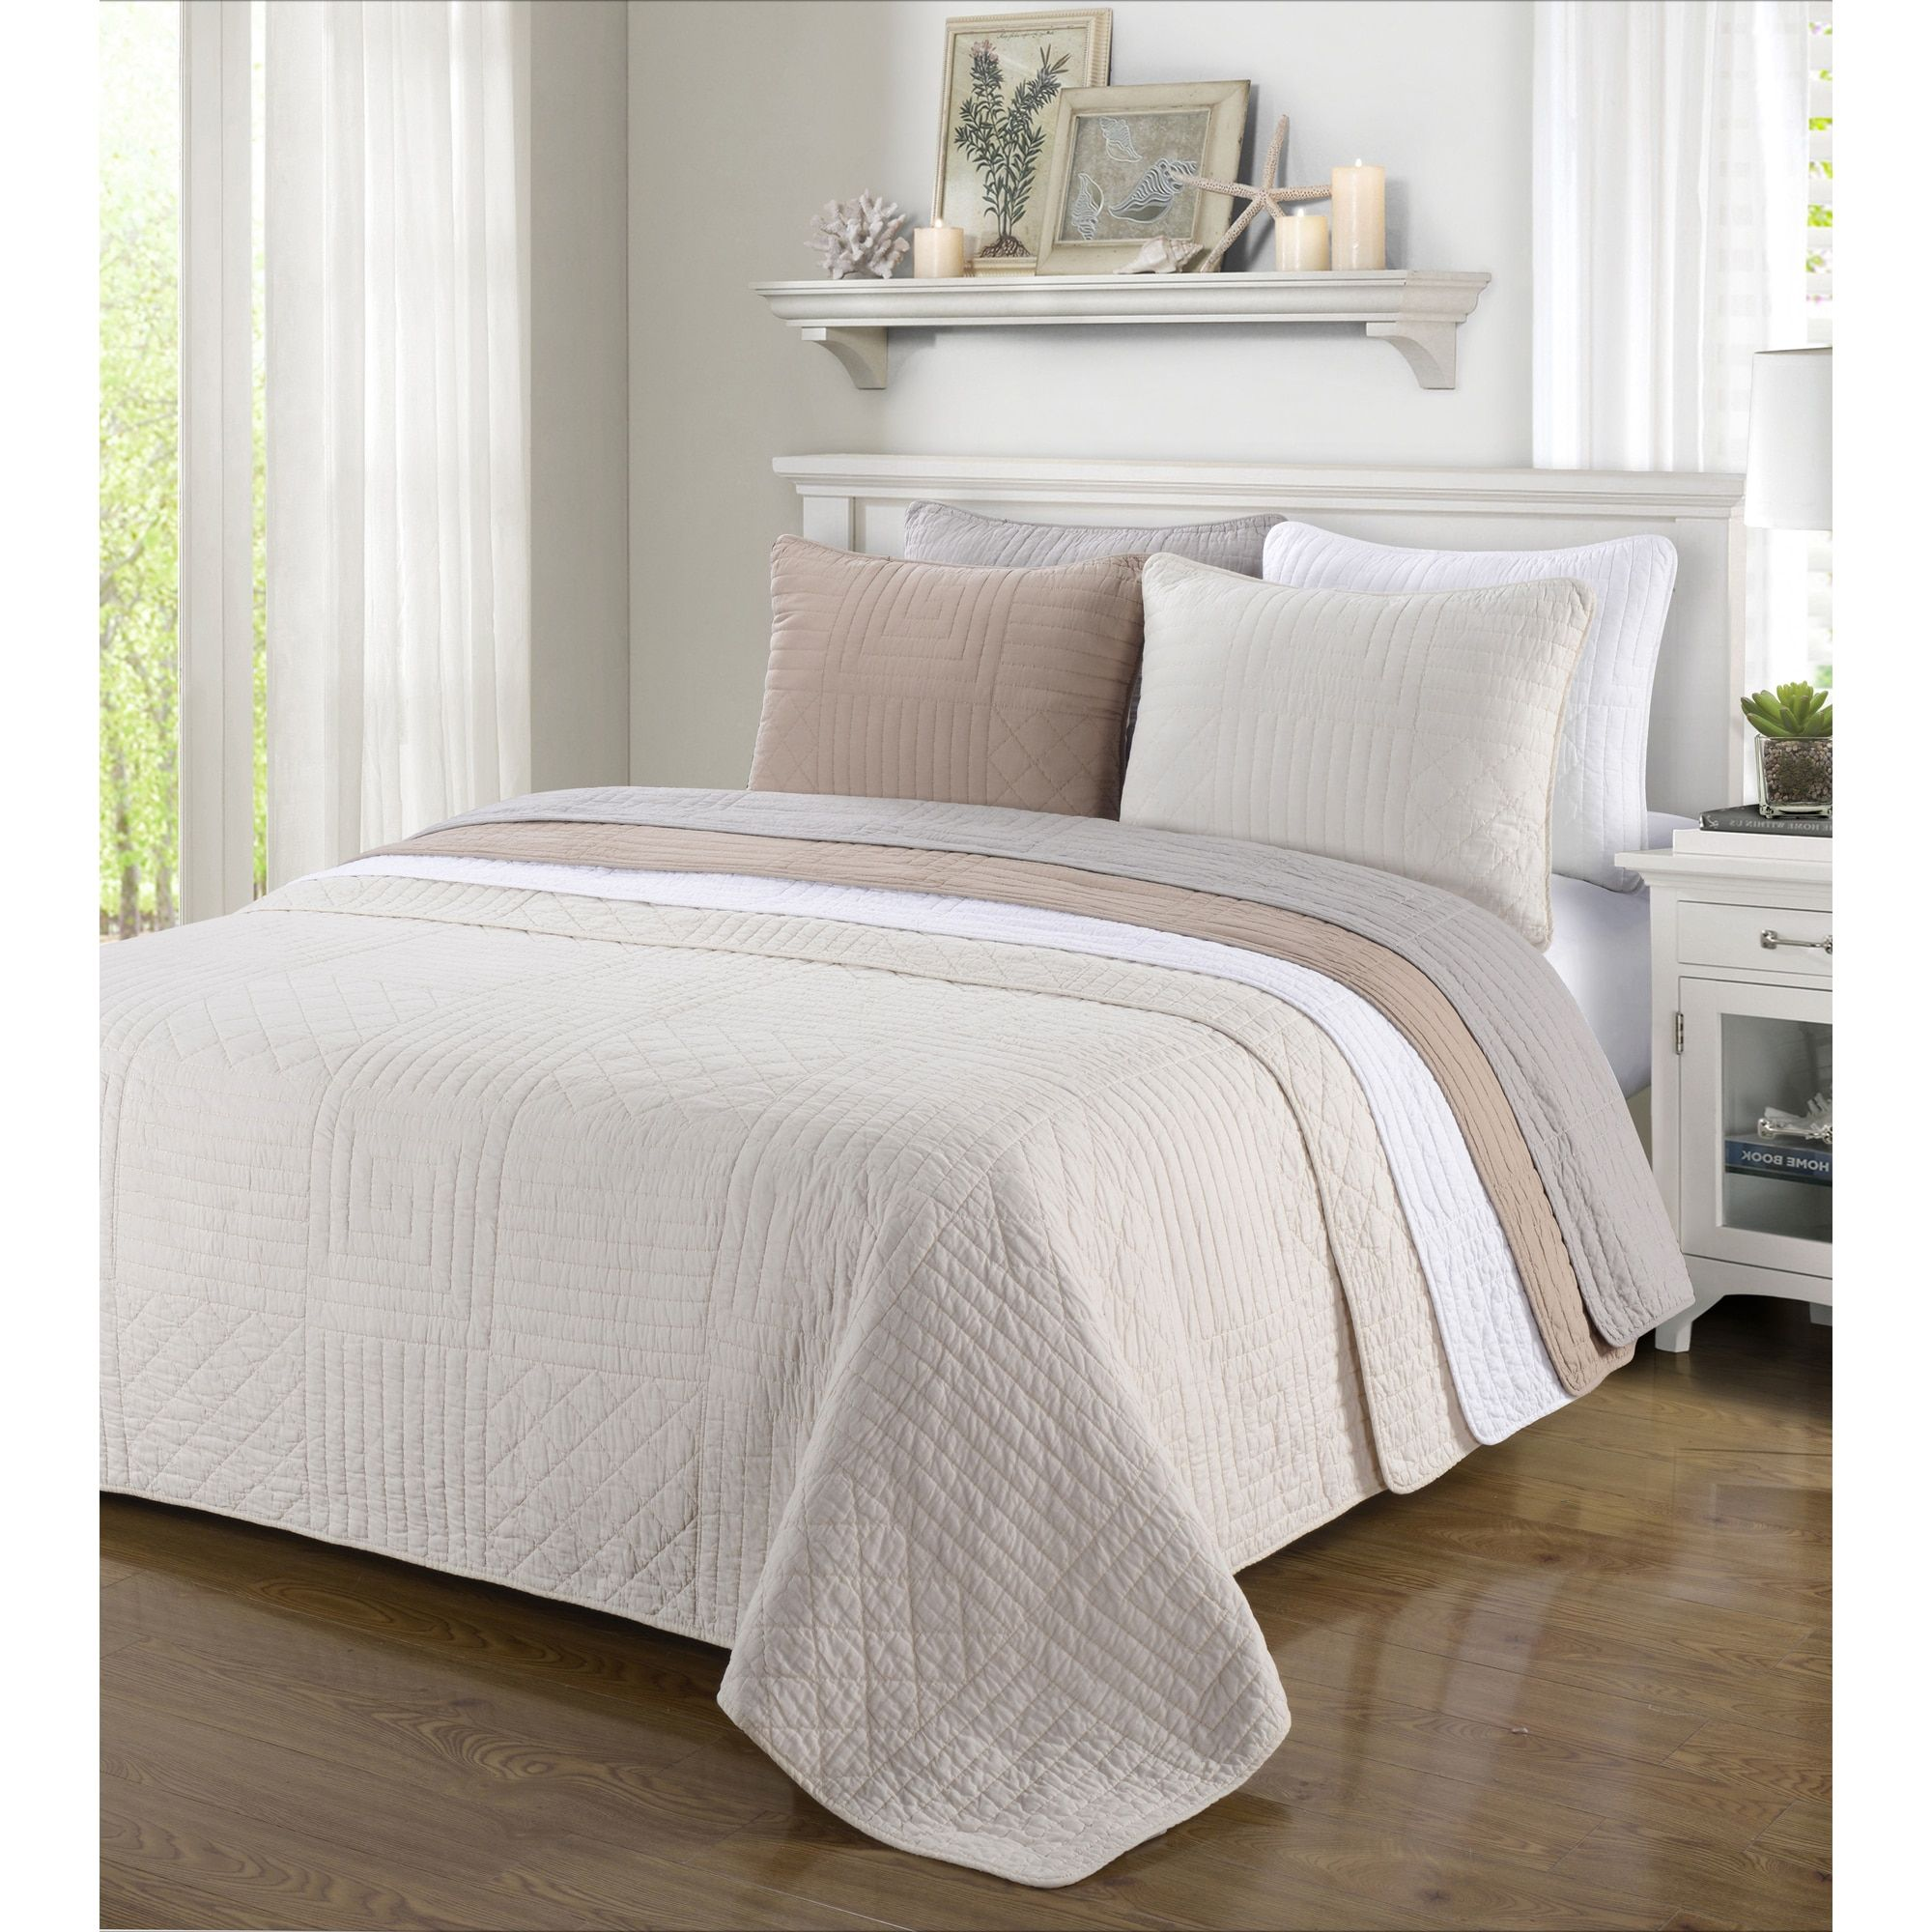 Superior Williams Cotton Stitched 3-piece King/ Cal-King Size ... : quilt cal king - Adamdwight.com